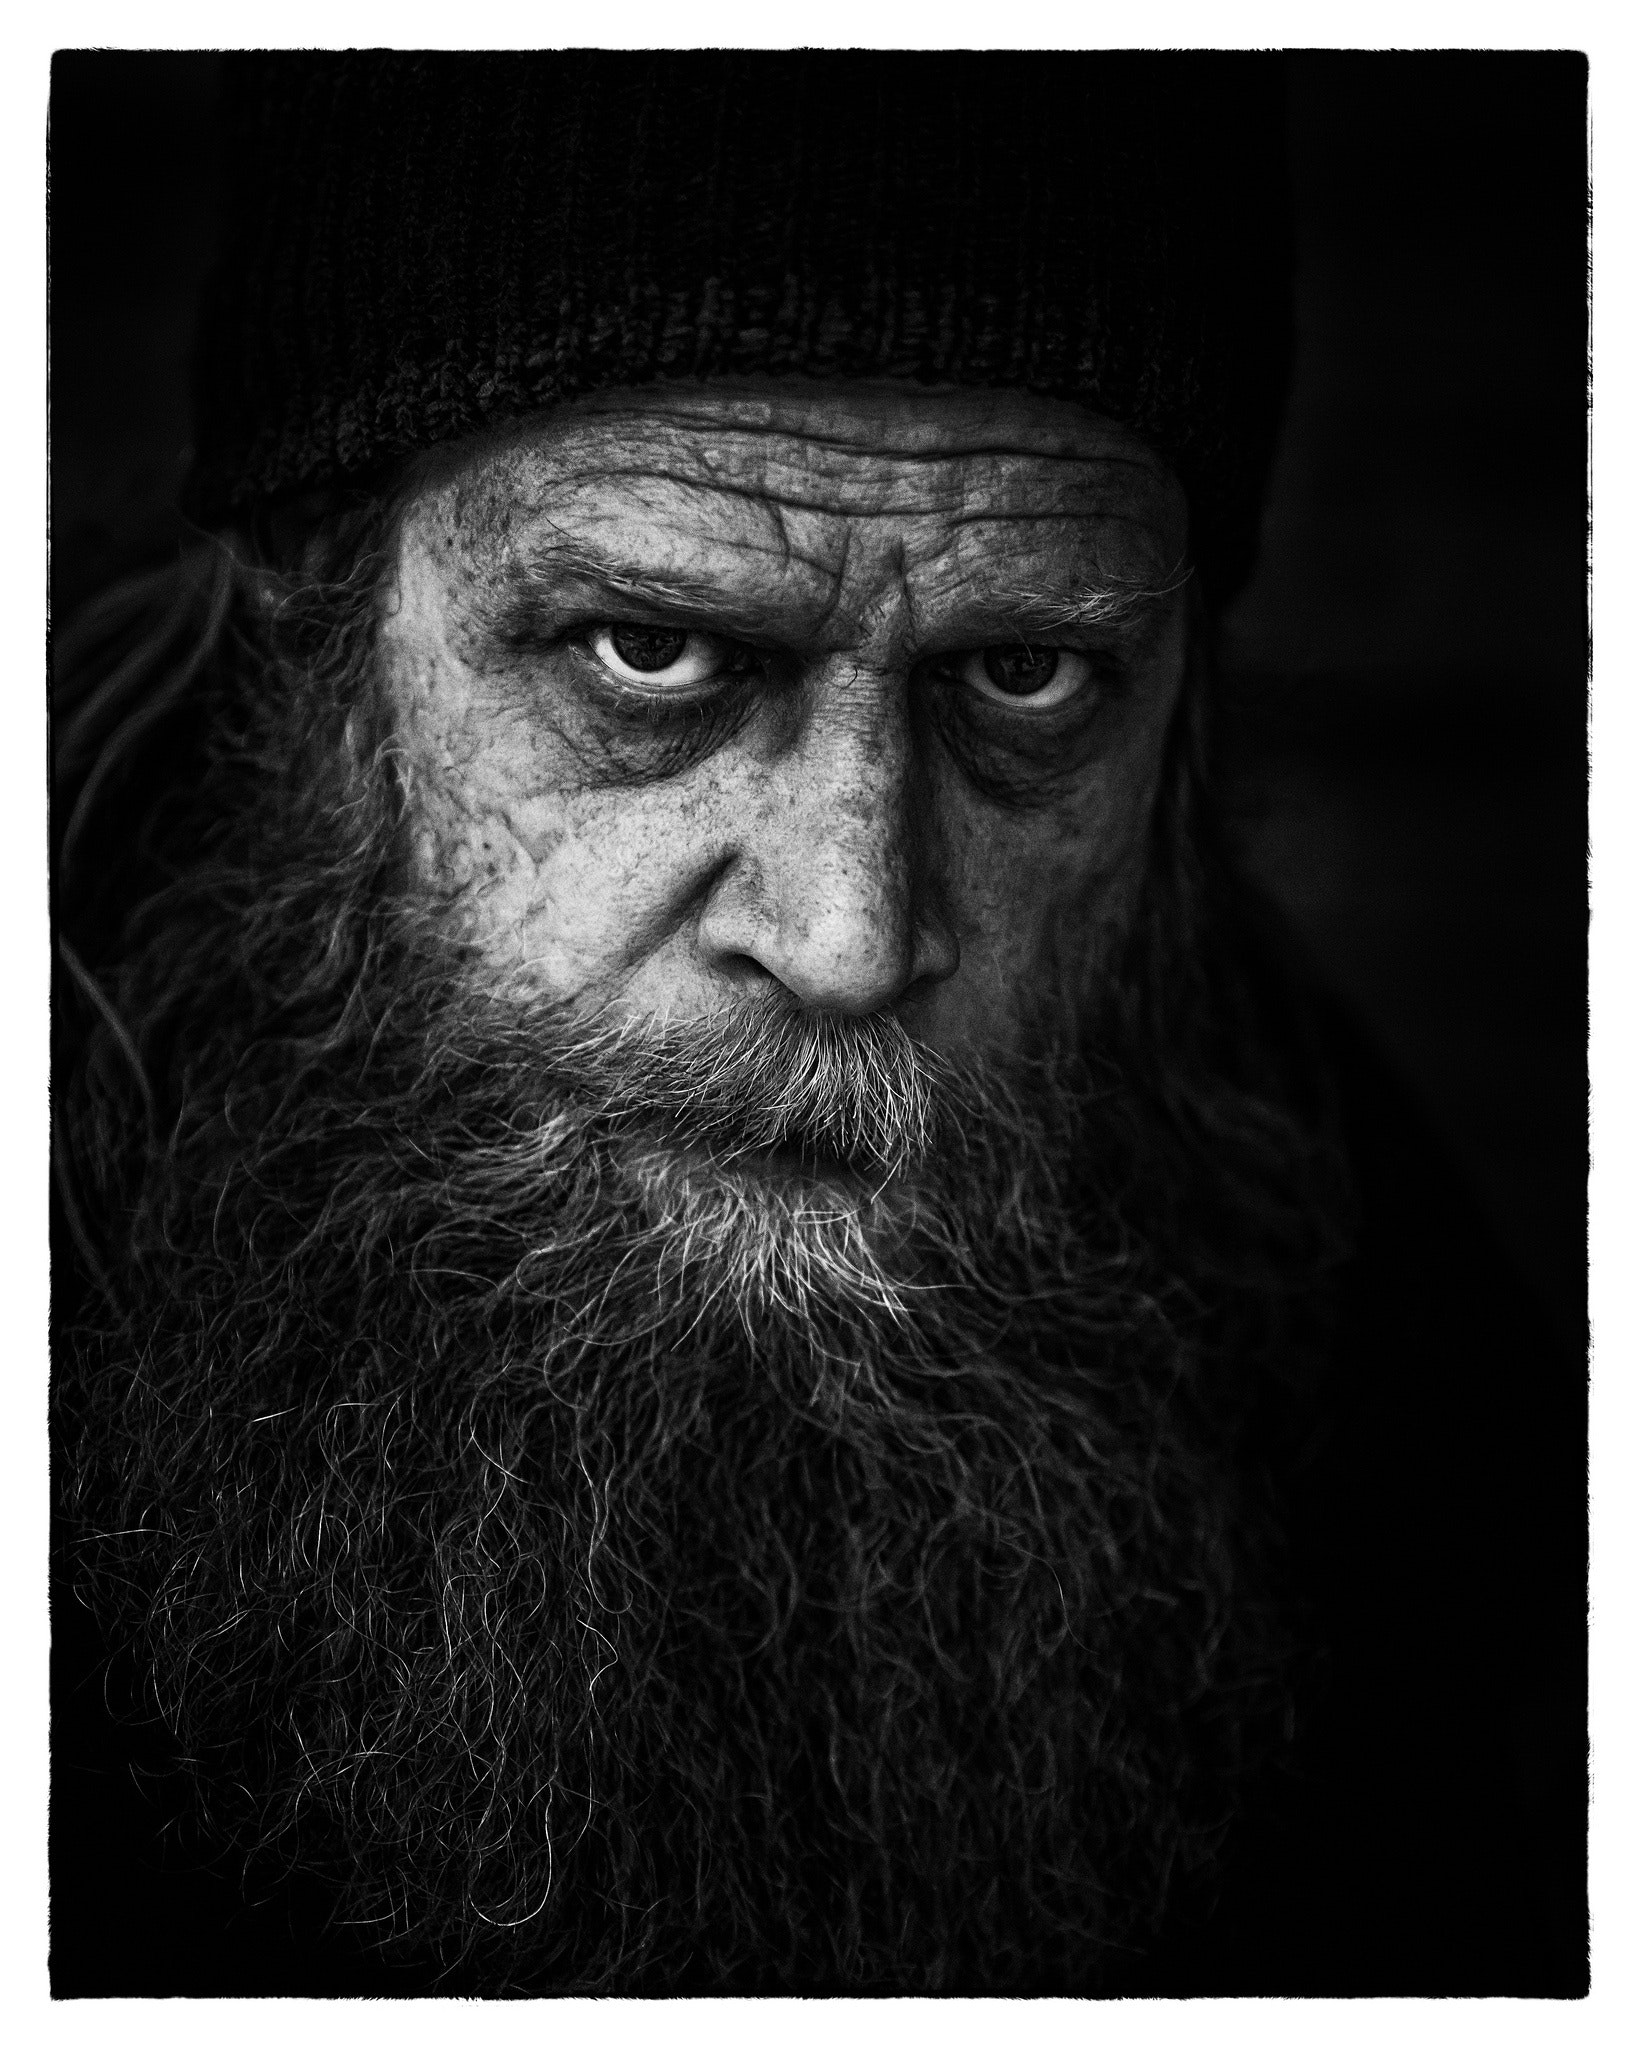 Man's Face in Grayscale Photography, Adult, Angry, Beard, Black-and-white, HQ Photo